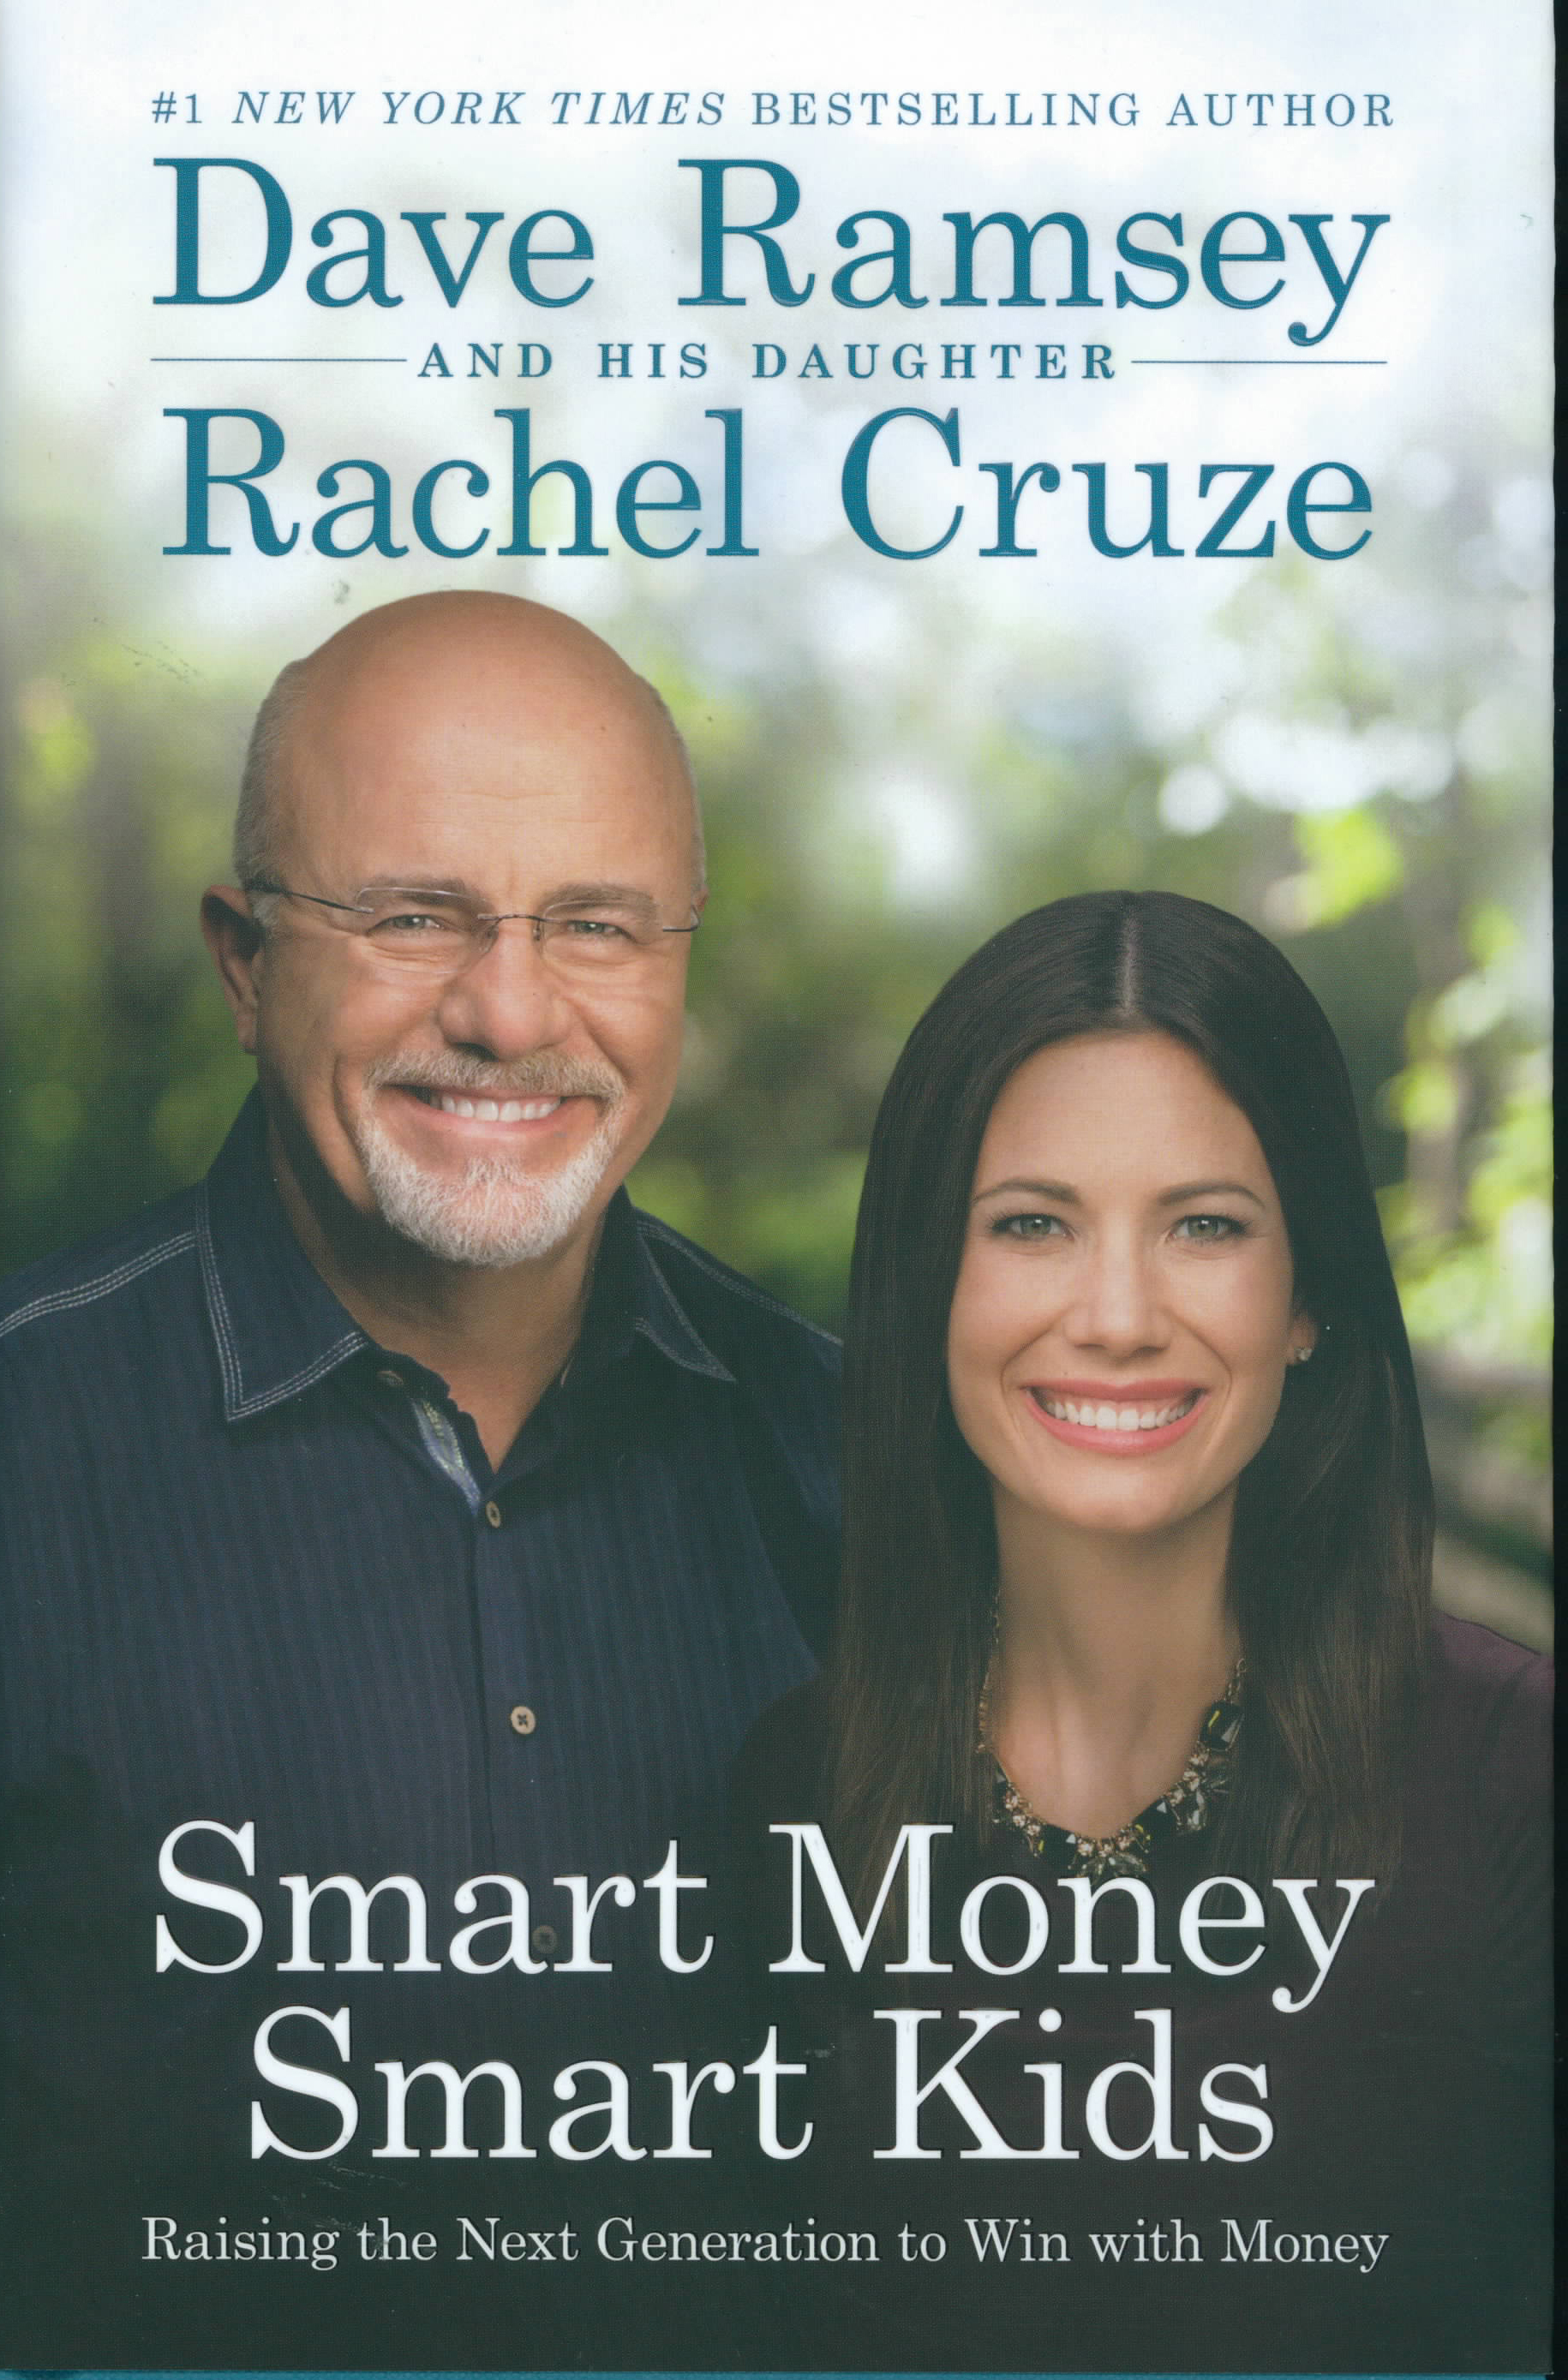 Smart Money Smart Kids by Dave Ramsey 108-9781937077631